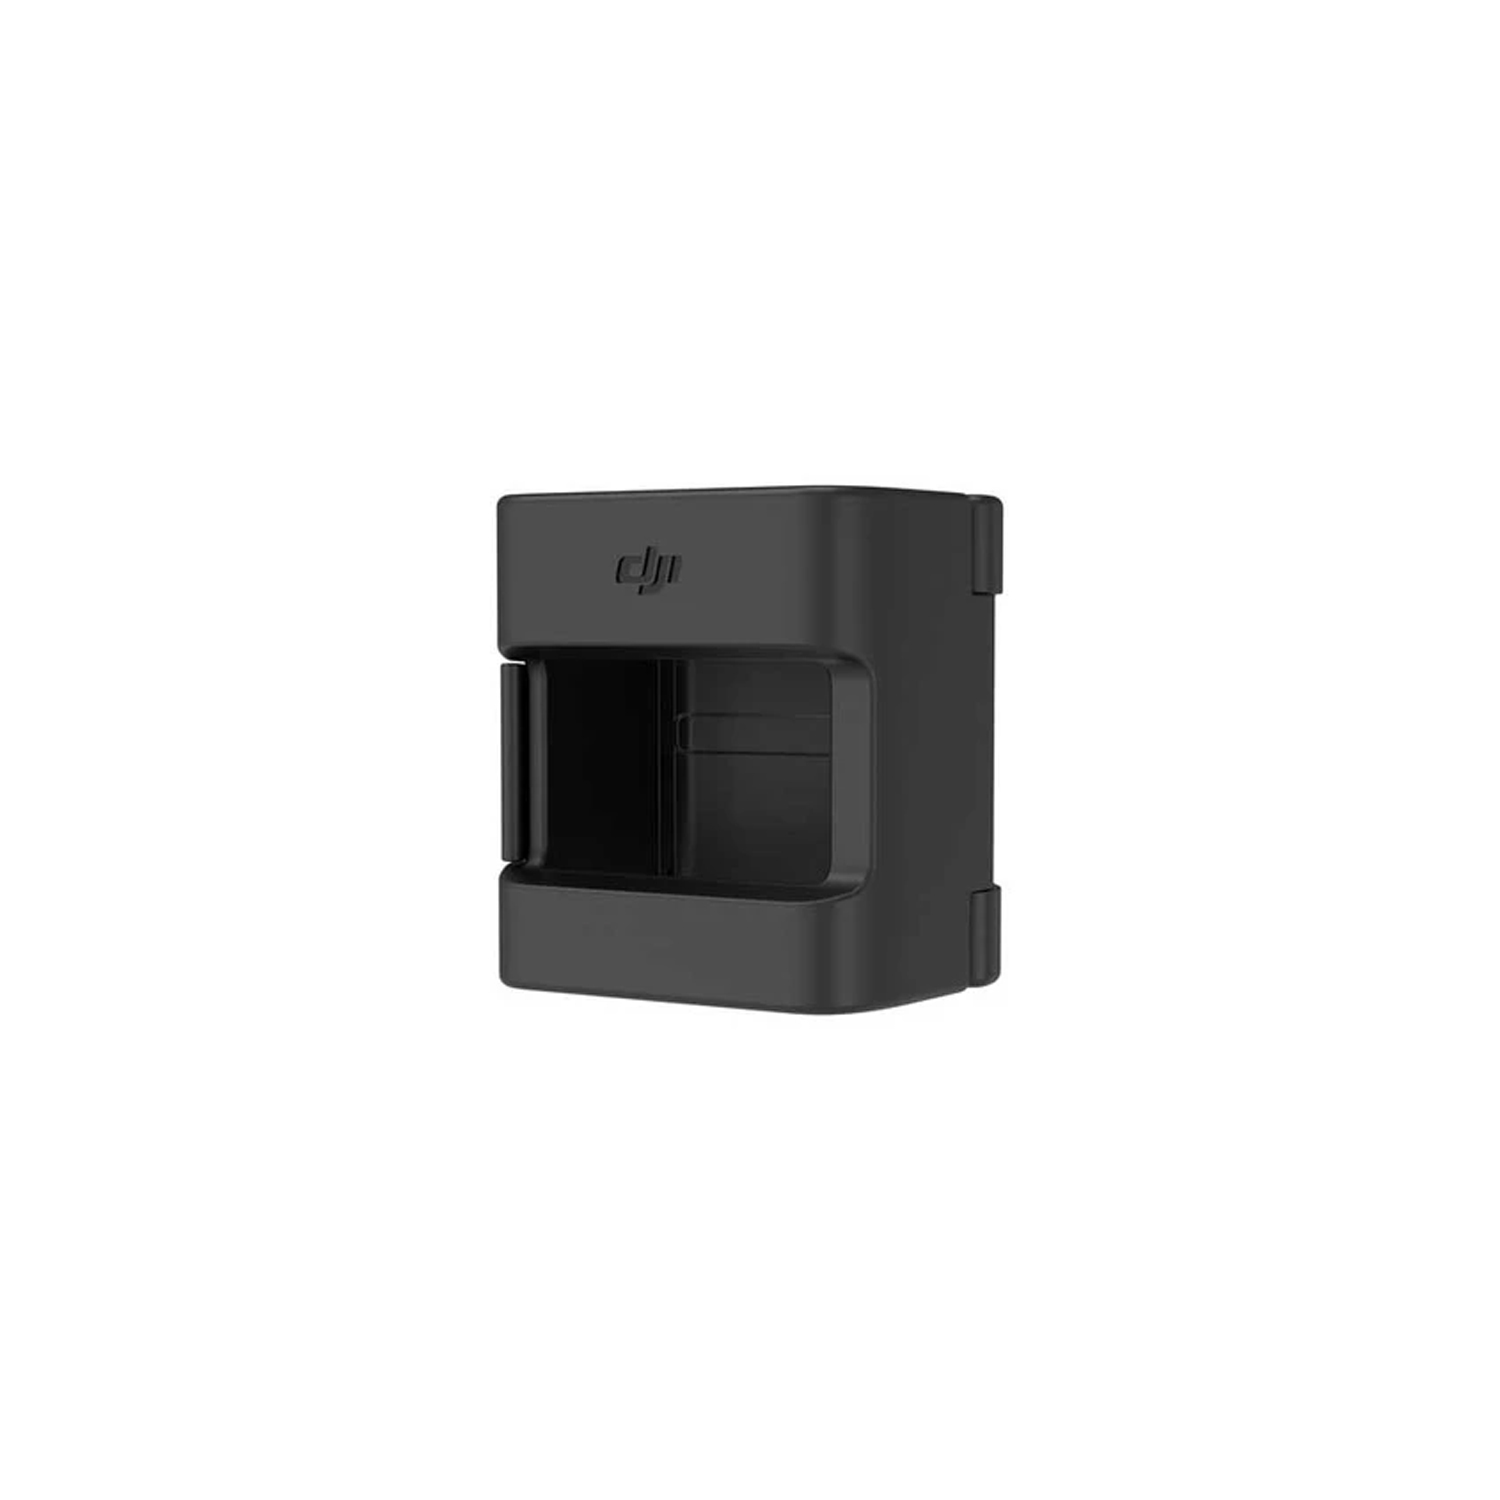 DJI-6958265183454-Osmo-Pocket-Part-13-Expansion-Ki1t.jpg